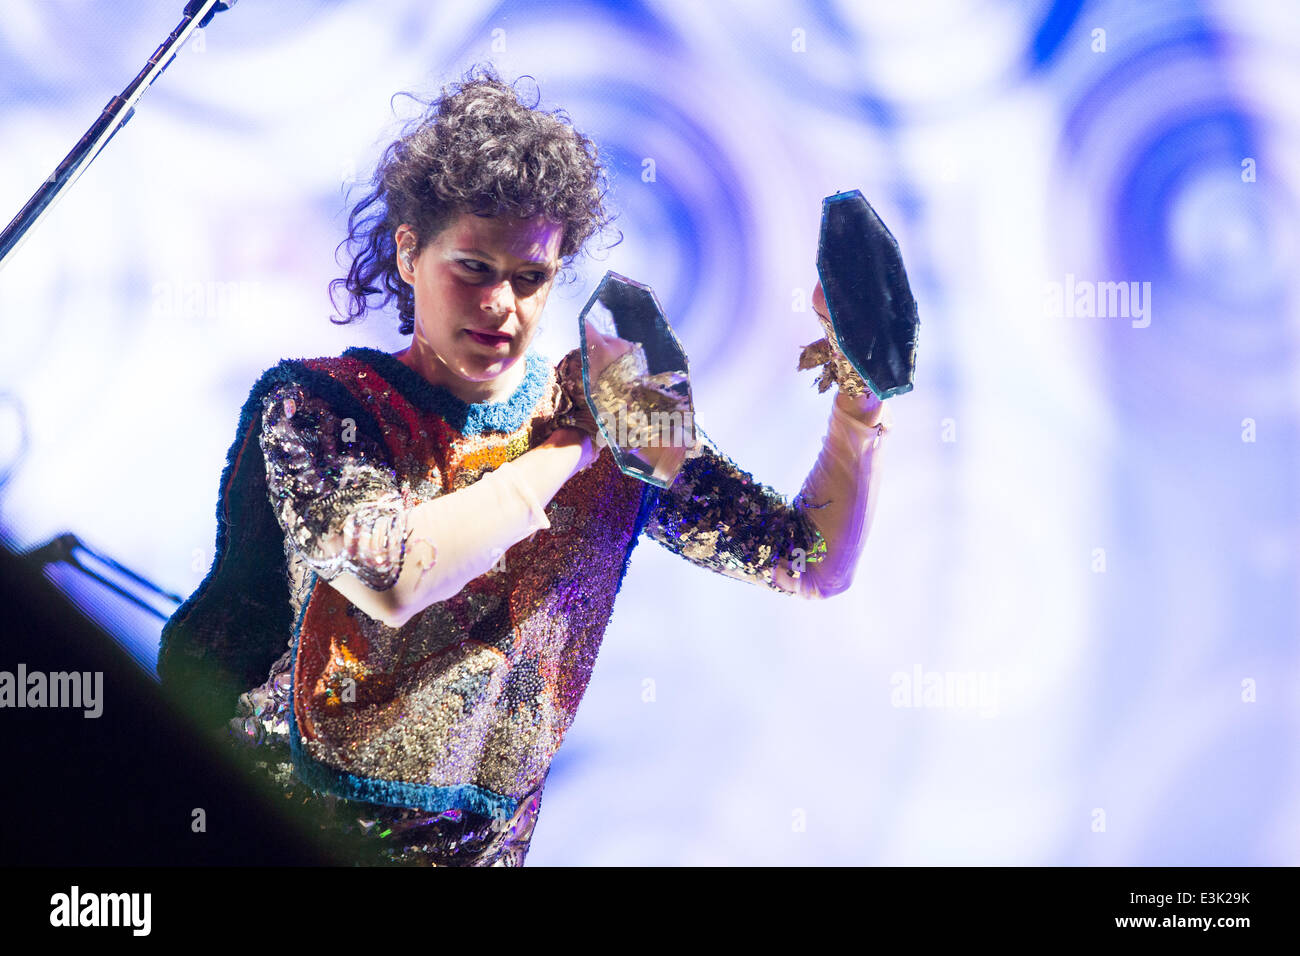 Rome, Italy. 23rd June, 2014. Régine Chassagne of Arcade Fire performs live in Rome at the Rock in Roma Festival - Stock Image